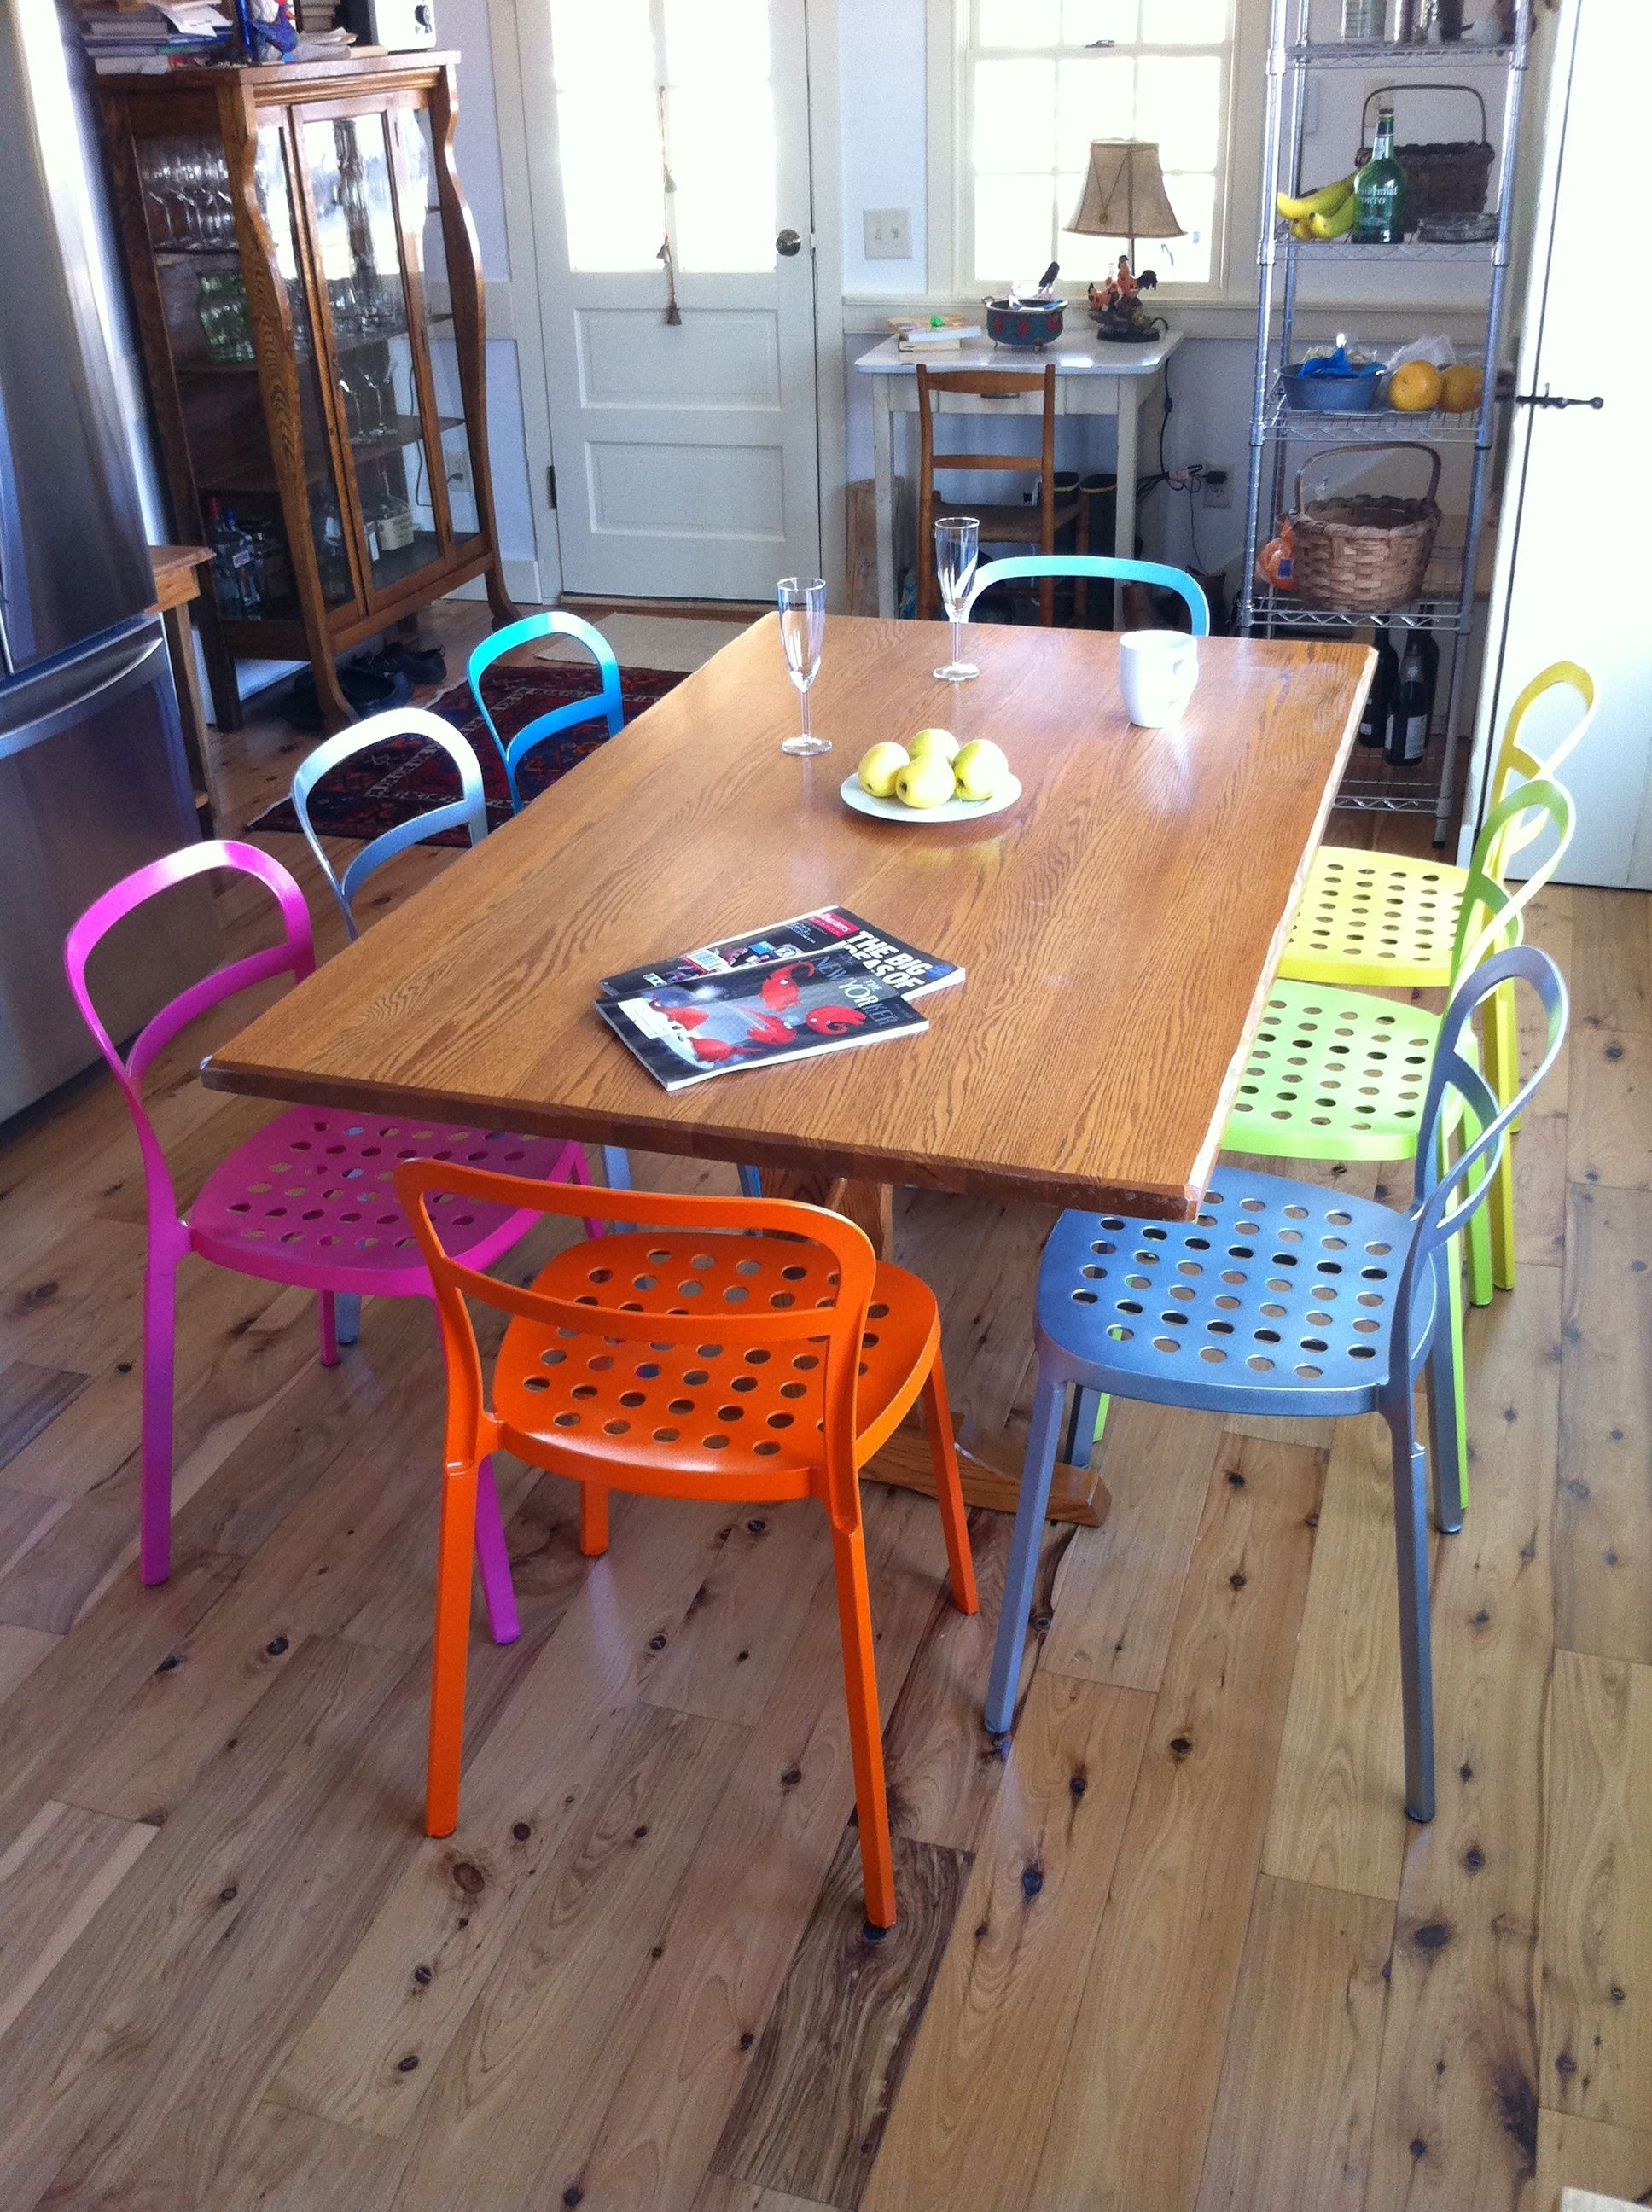 Uncategorized hanging chair ikea - Ikea Reidar Chair In Multiple Colors Could Look Awesome Around Our Table When We Pull